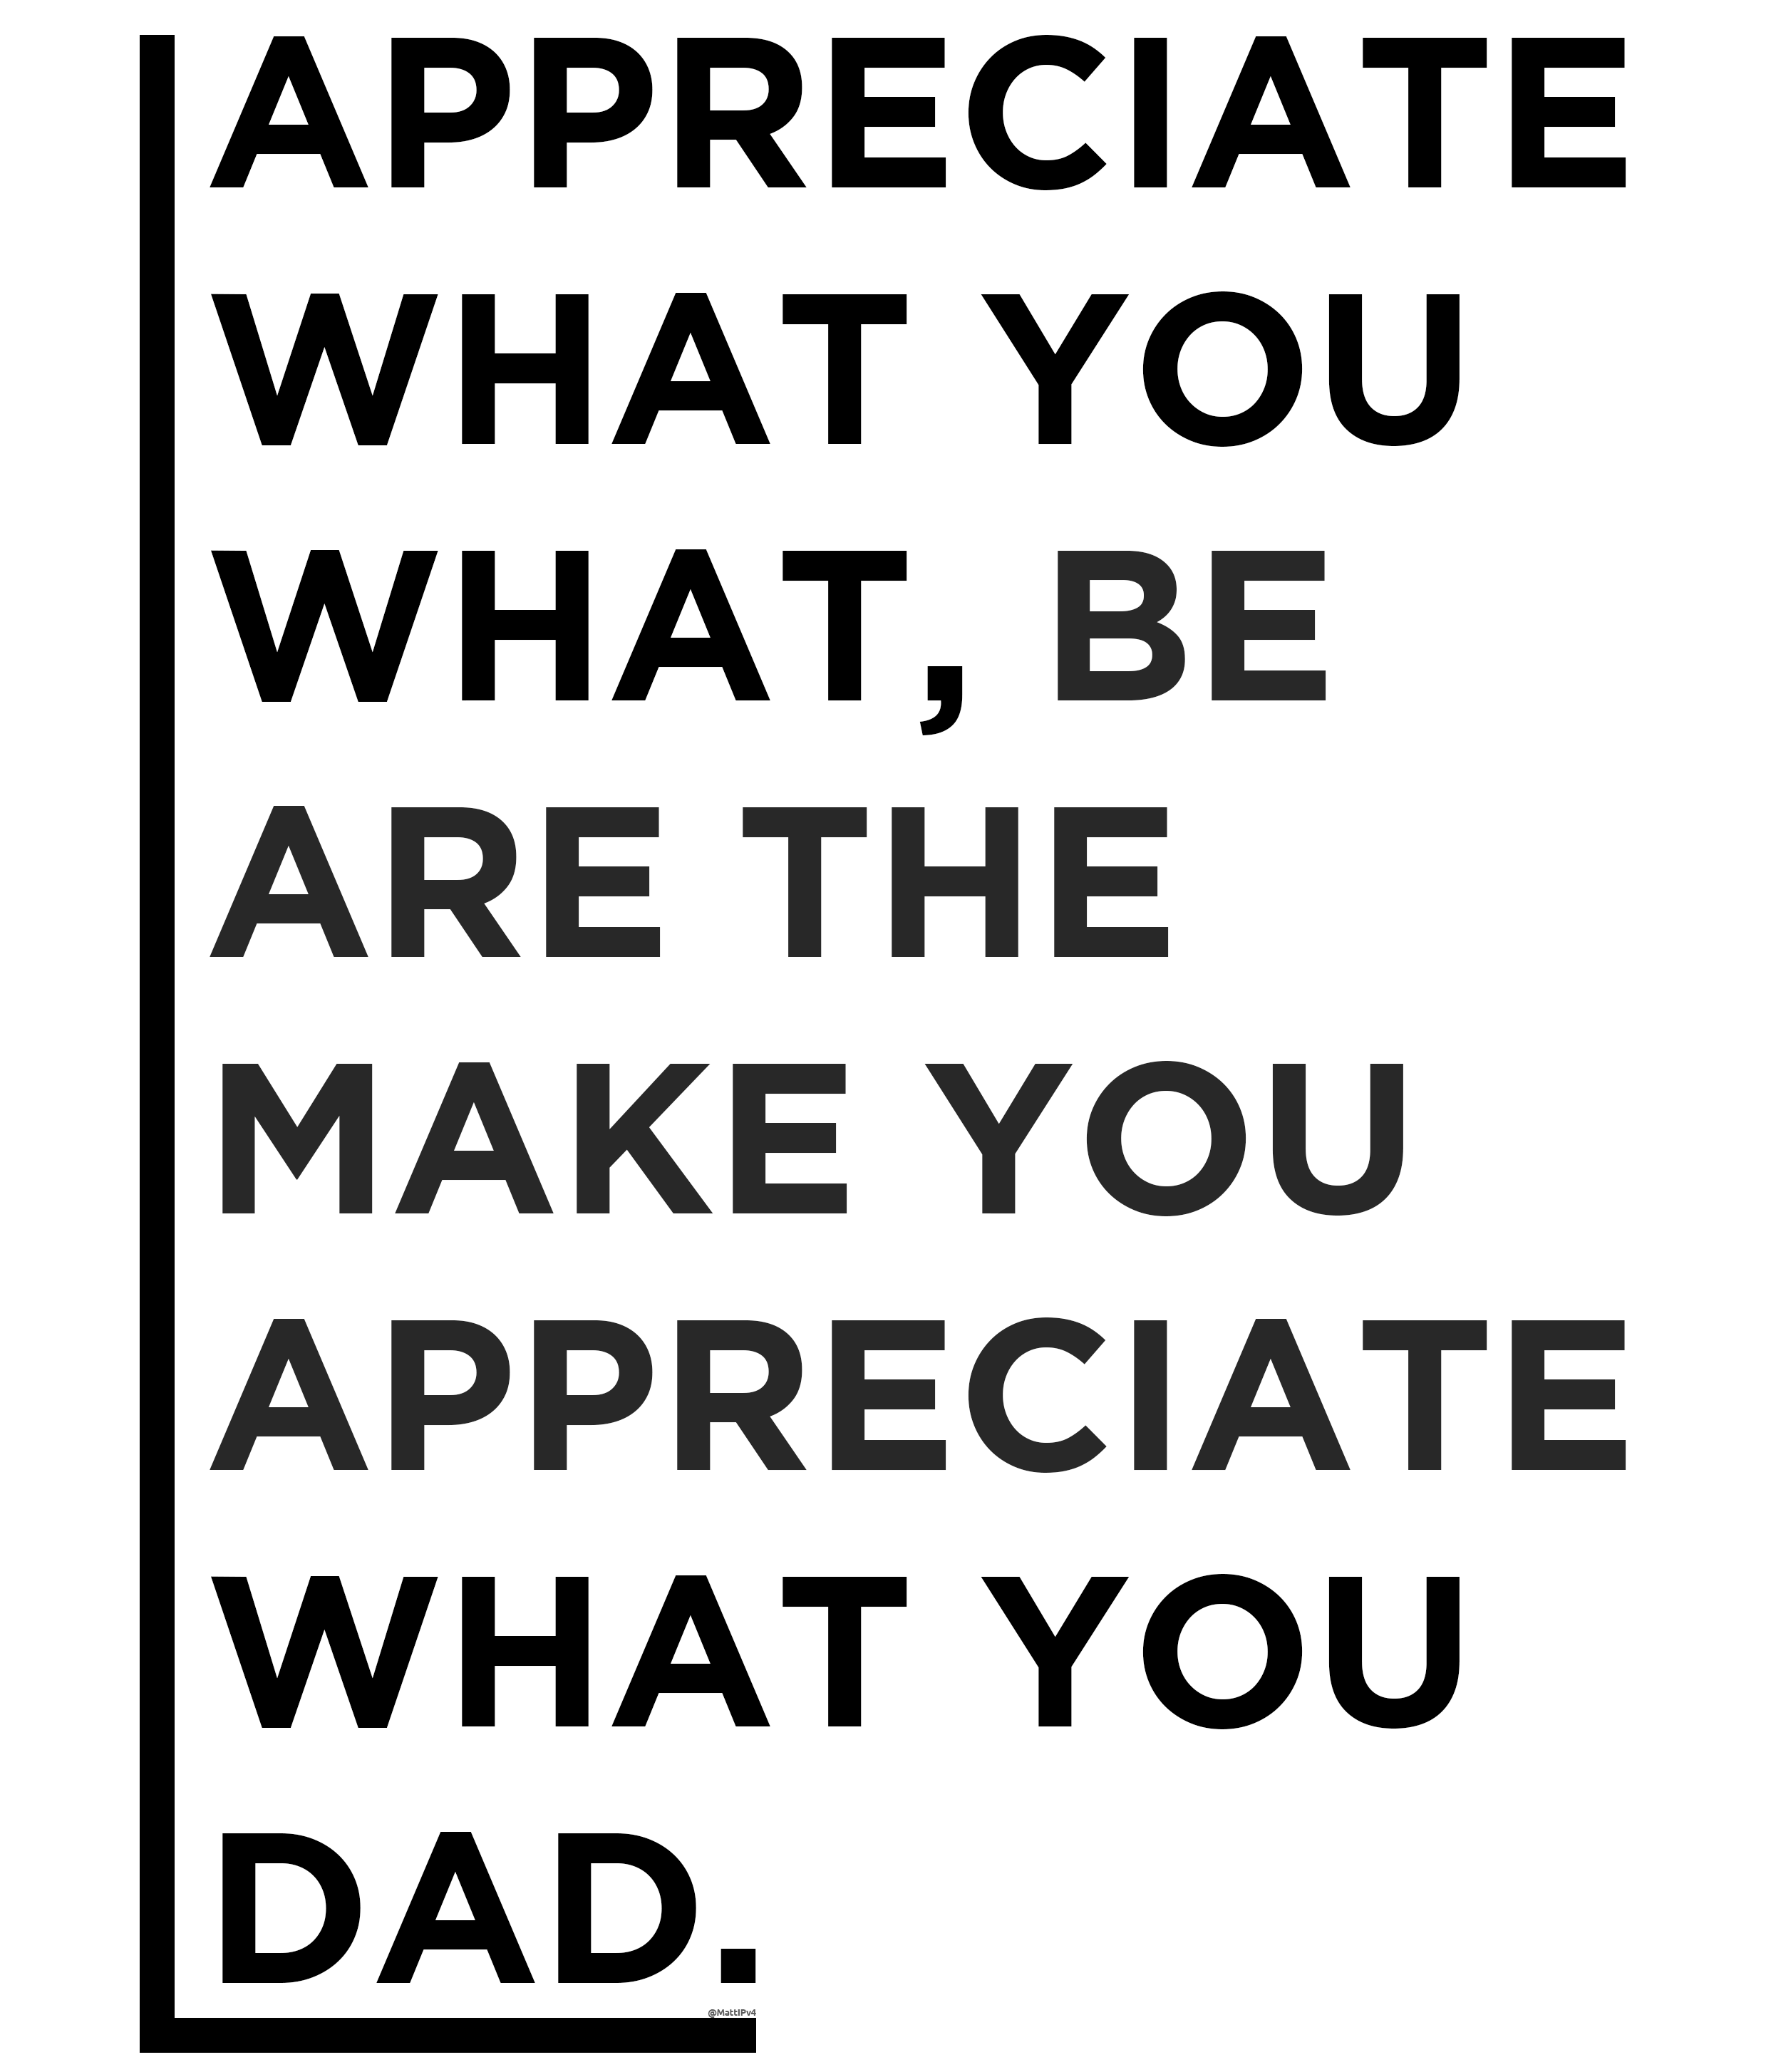 [Image] 'Appreciate What You What'